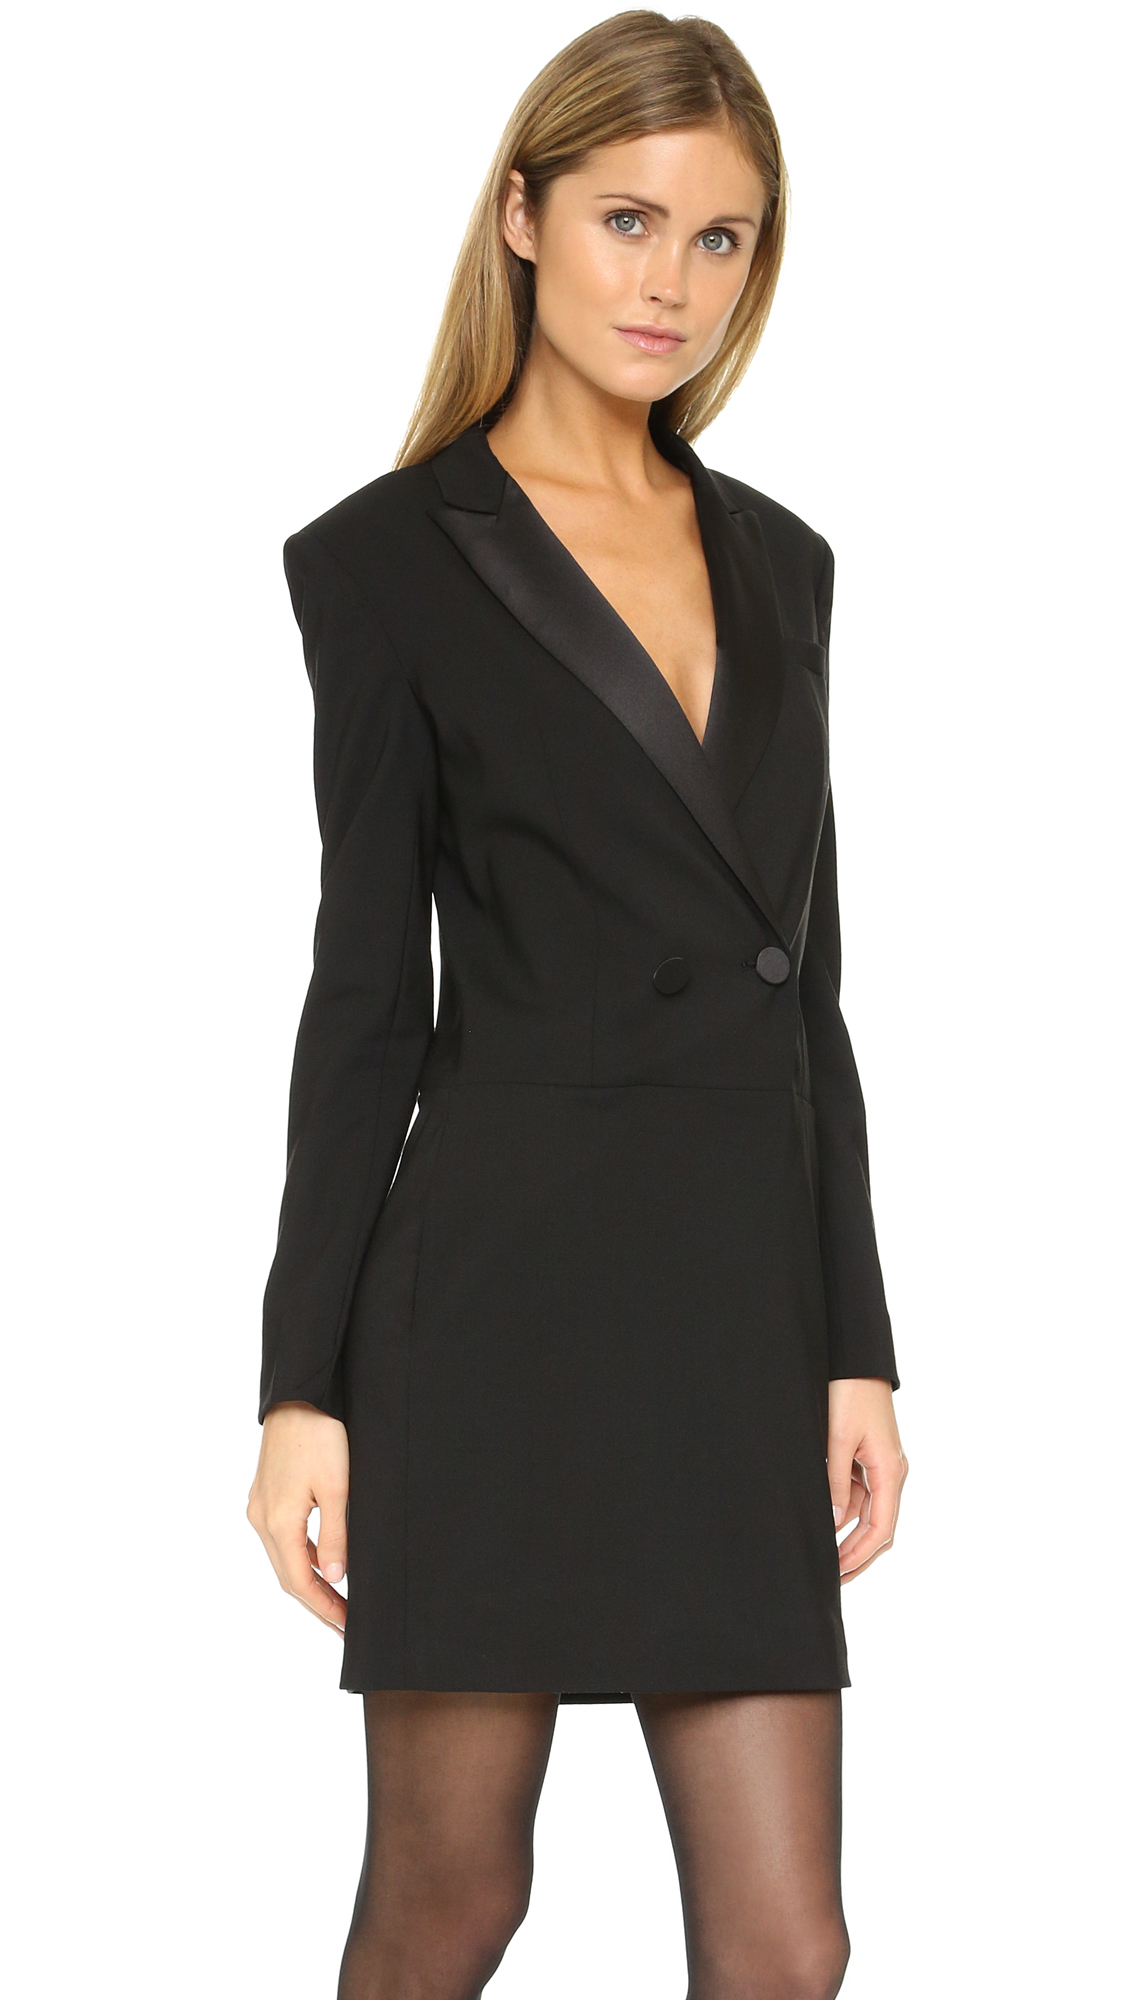 Dkny Long Sleeve Tuxedo Dress In Black Lyst